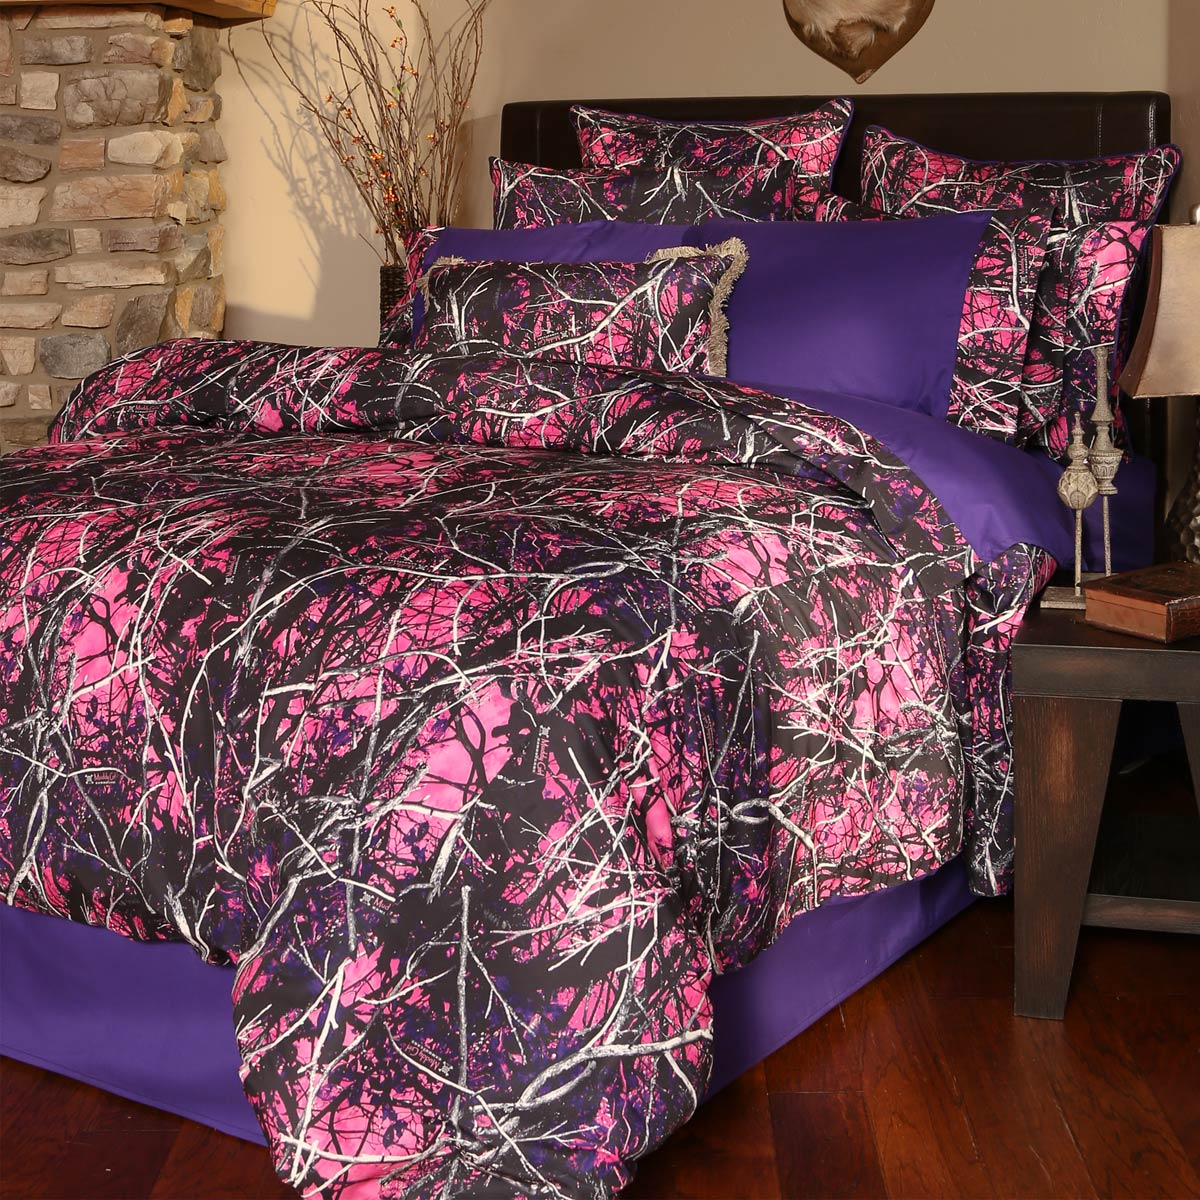 Black Forest Decor Muddy girl 4-piece king bed set